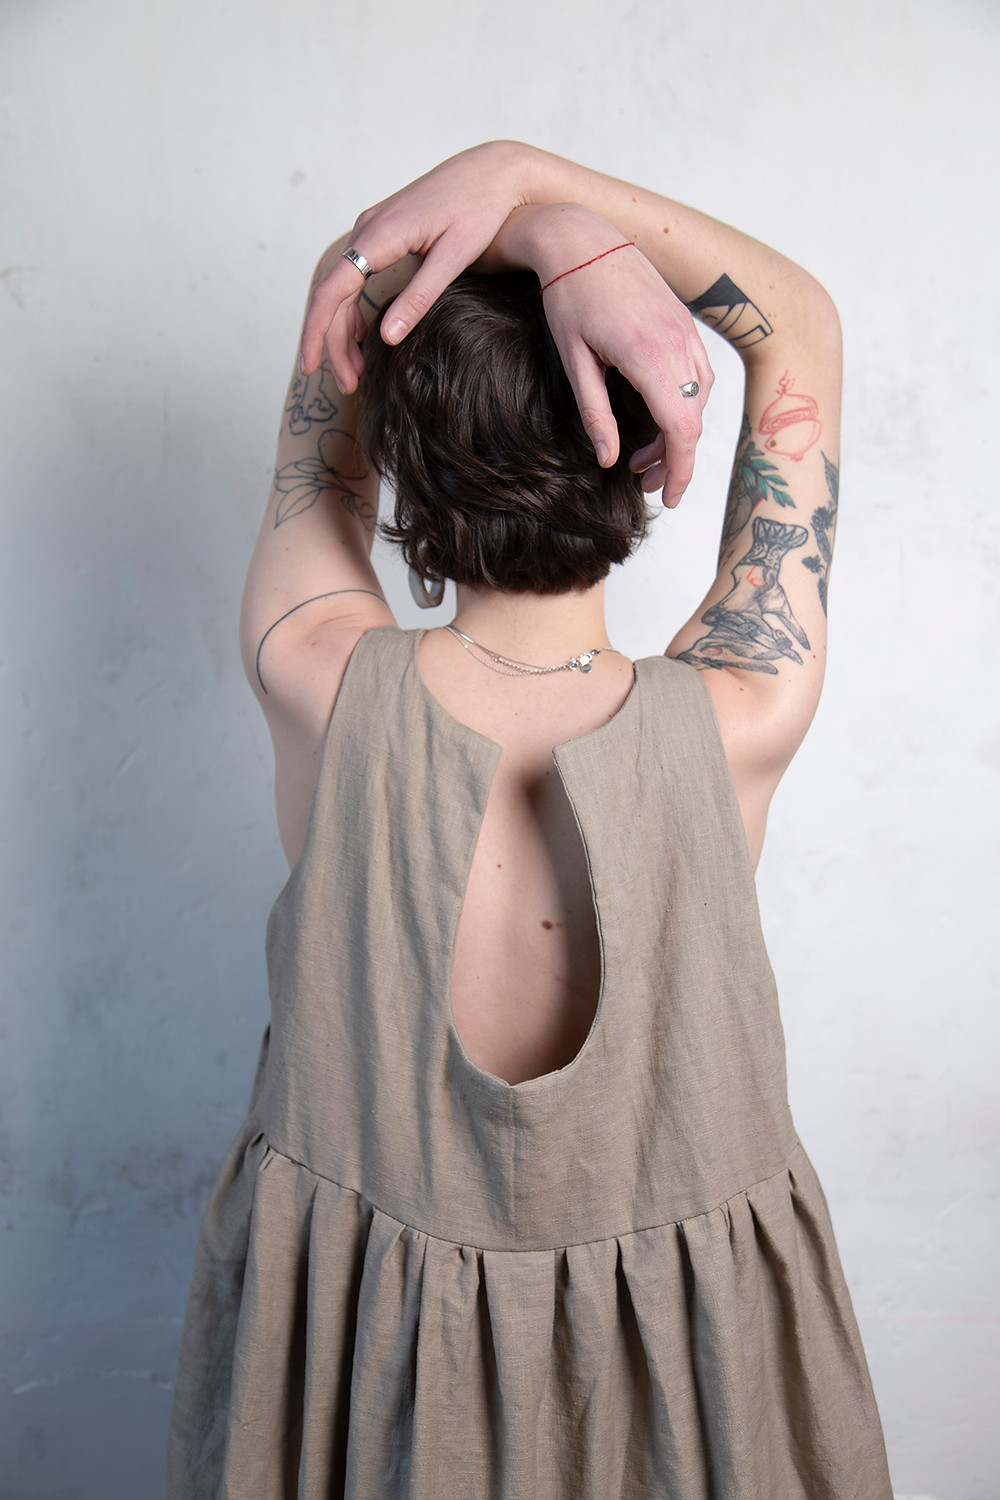 Rosana Expósito is a clothing brand that focuses on handmade t